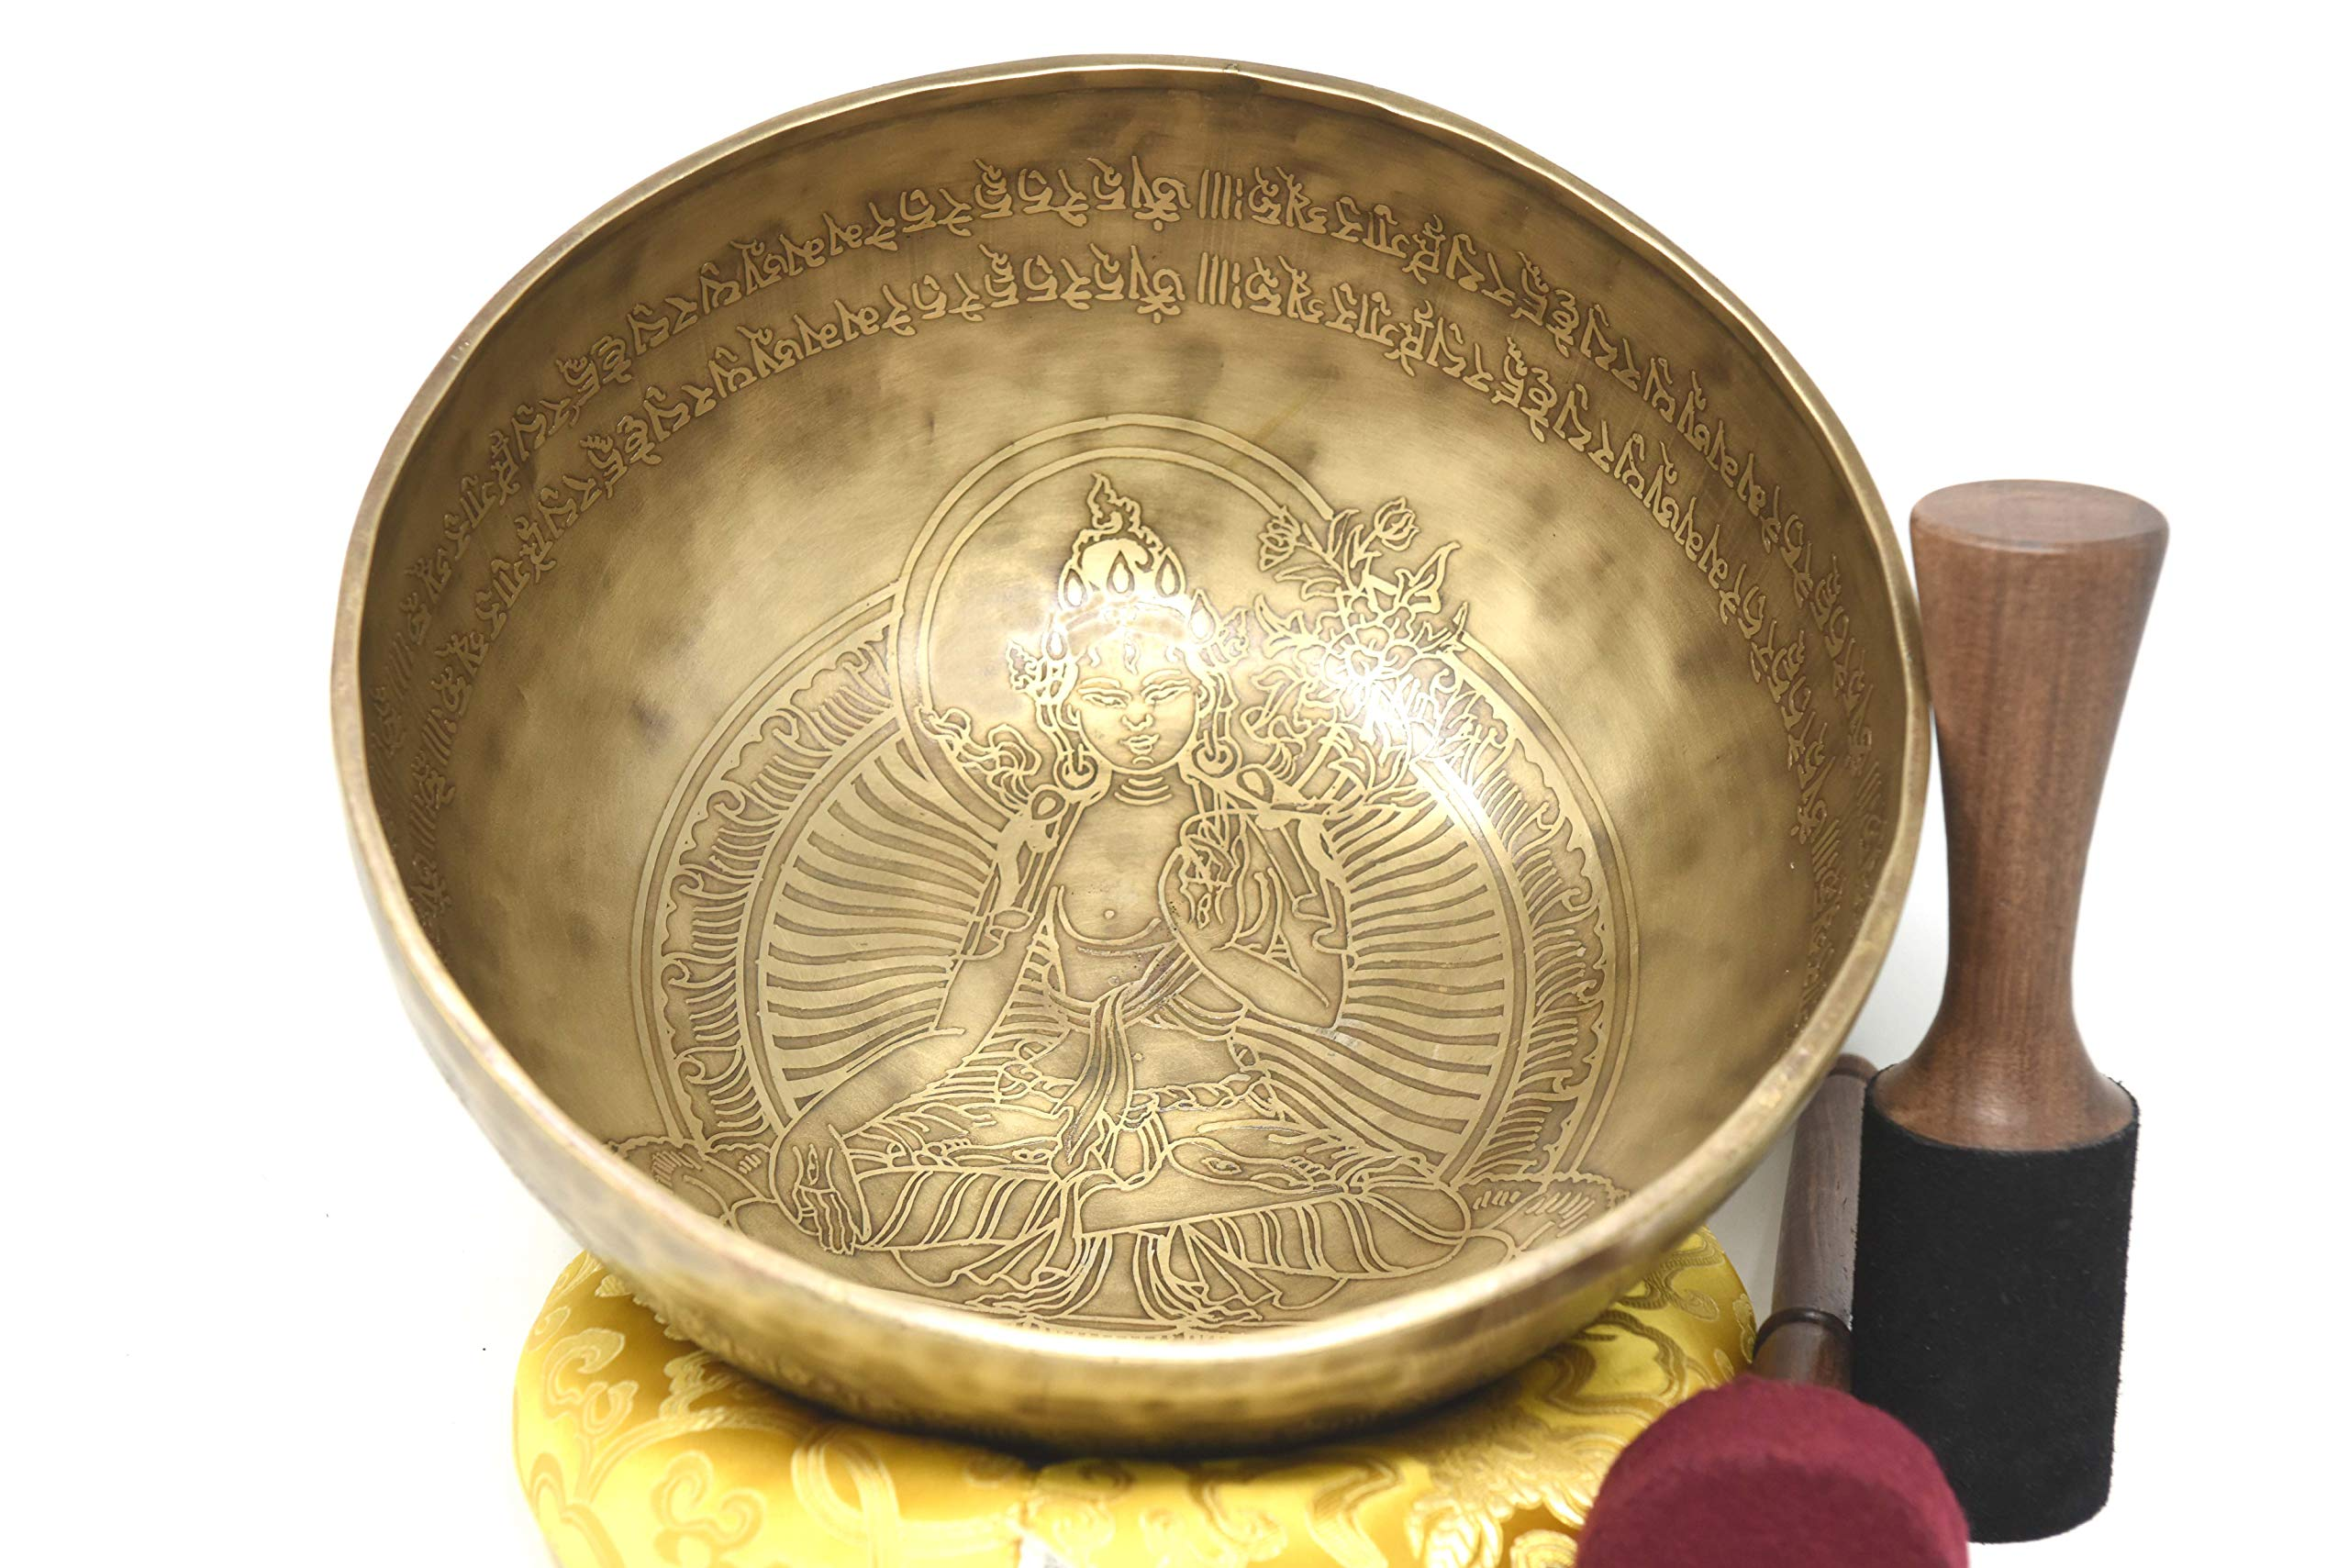 12'' Finest Meditation Mantra carved Singing bowl, Etching Tibetan Art Singing Bowl With Drum Stick Cushions and Mallet,Bowls from tibet